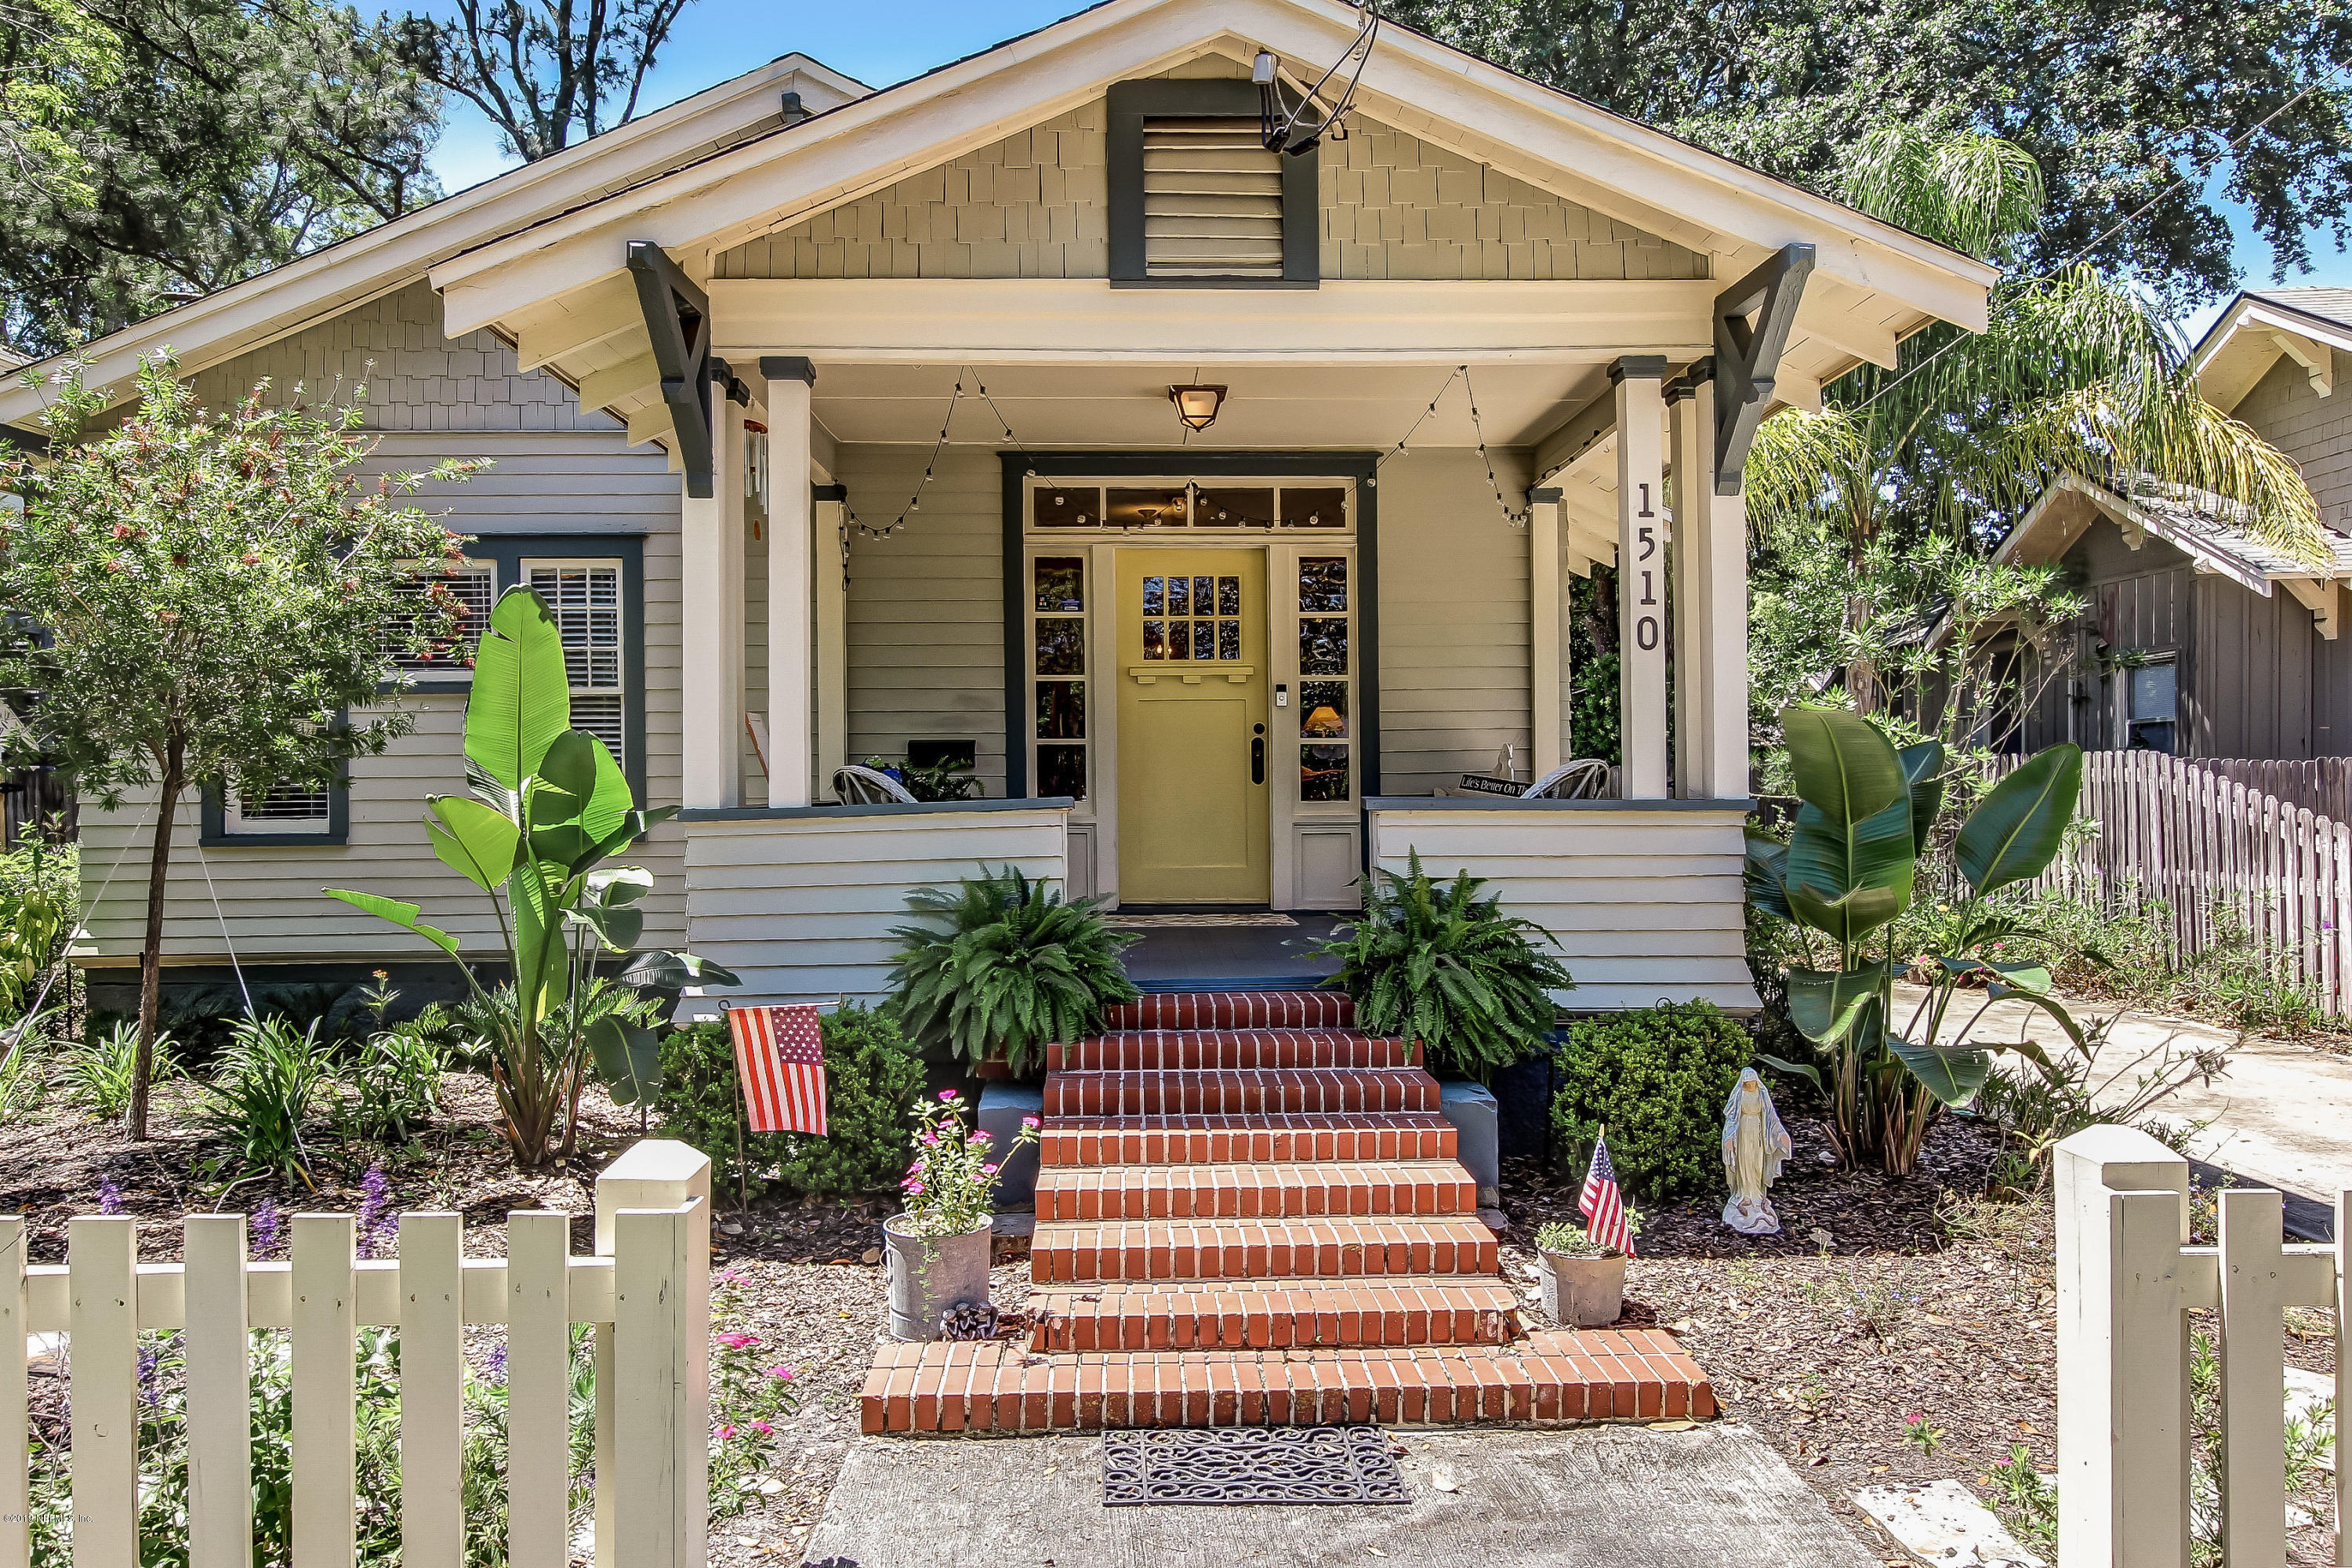 1510 ABERDEEN, JACKSONVILLE, FLORIDA 32205, 3 Bedrooms Bedrooms, ,2 BathroomsBathrooms,Residential - single family,For sale,ABERDEEN,990427